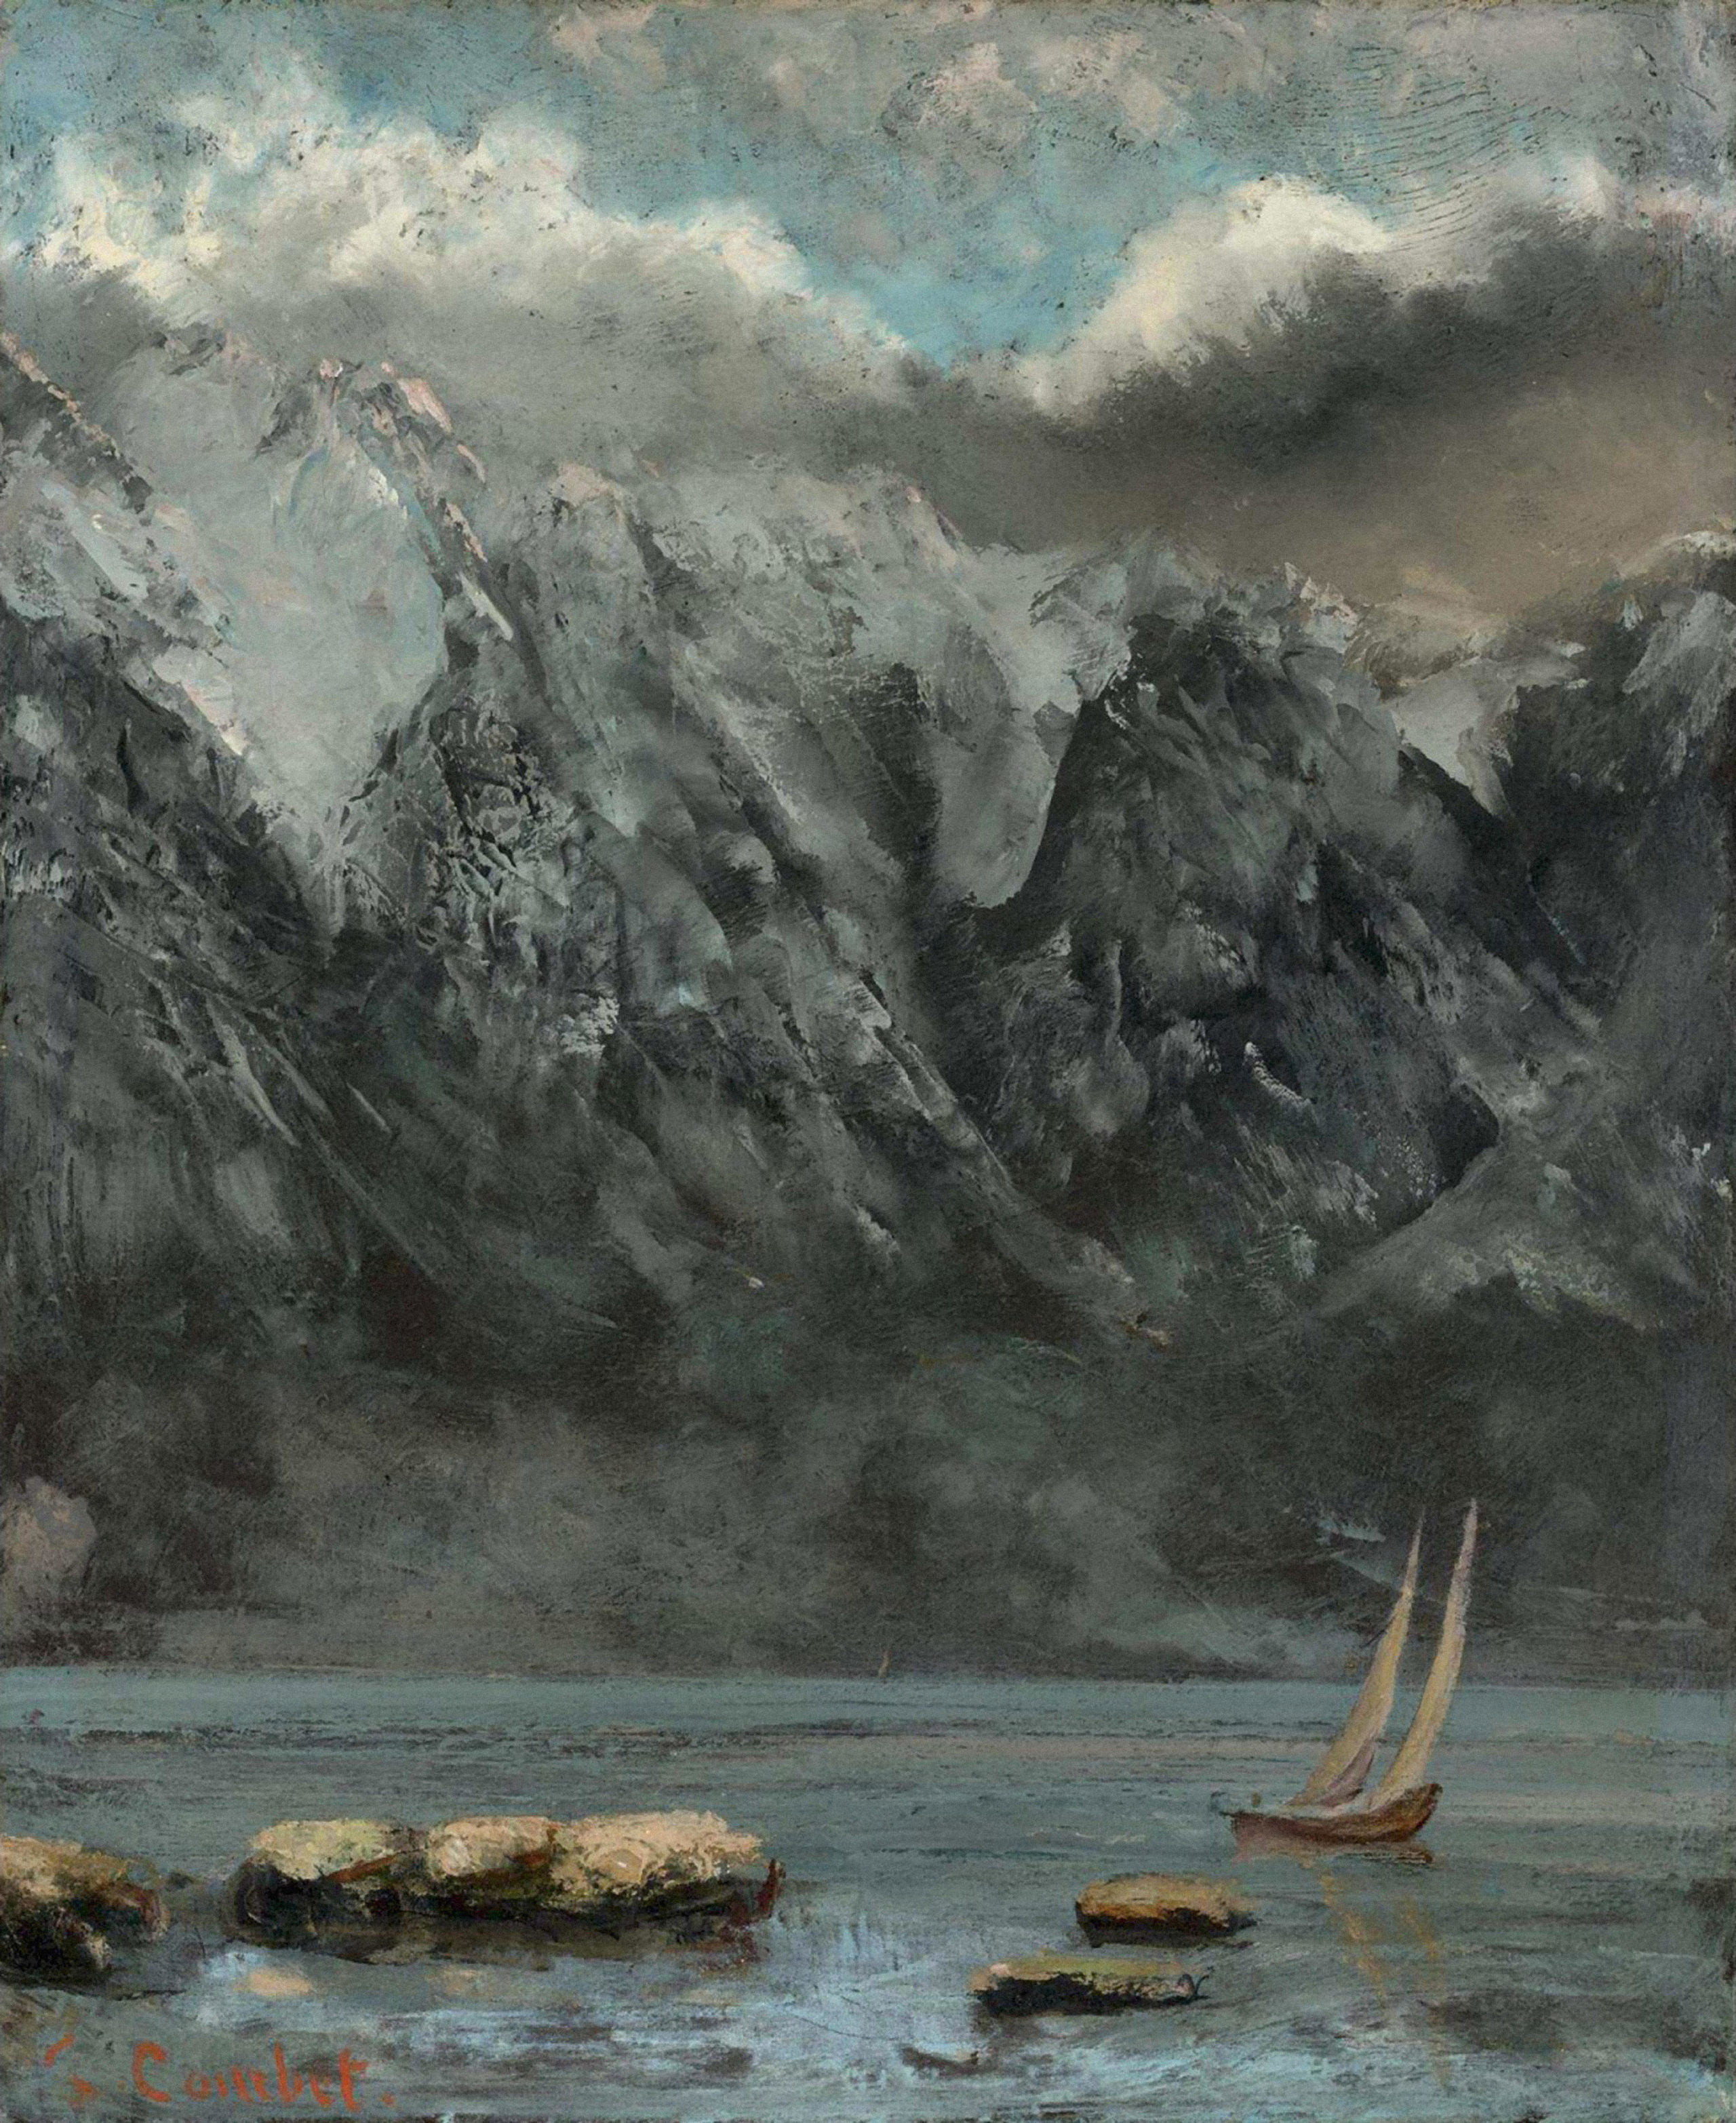 Gustave Courbet, Bords Du Lac Léman, vers 1874.  © Photo12 / Alamy